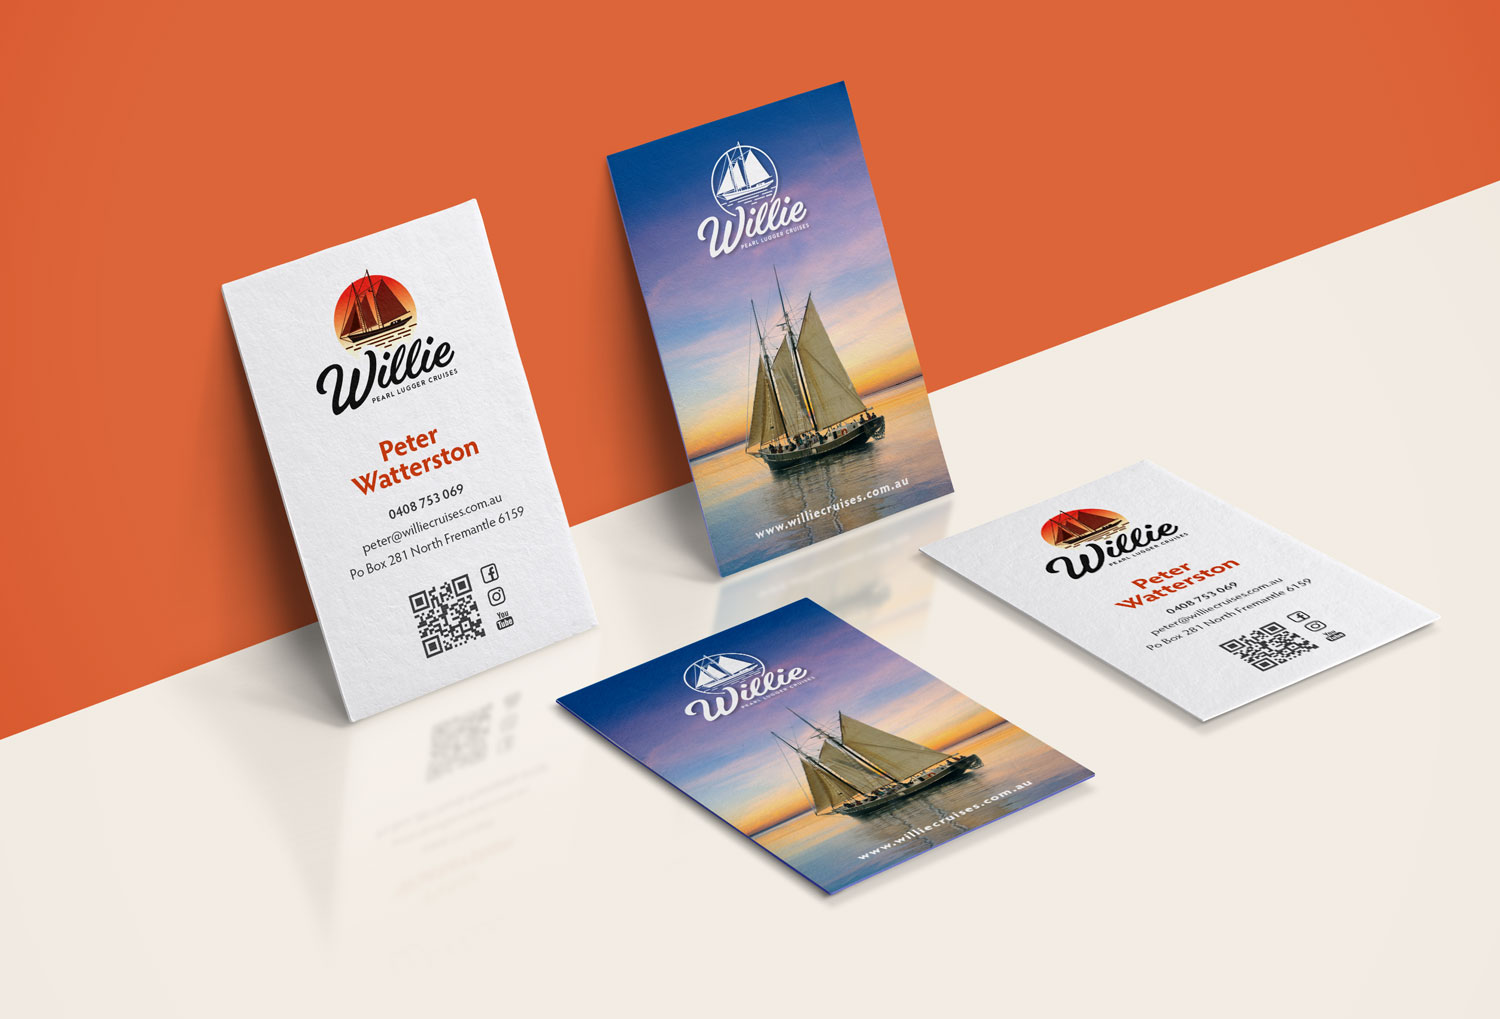 Printed marketing materials for 'Willie'